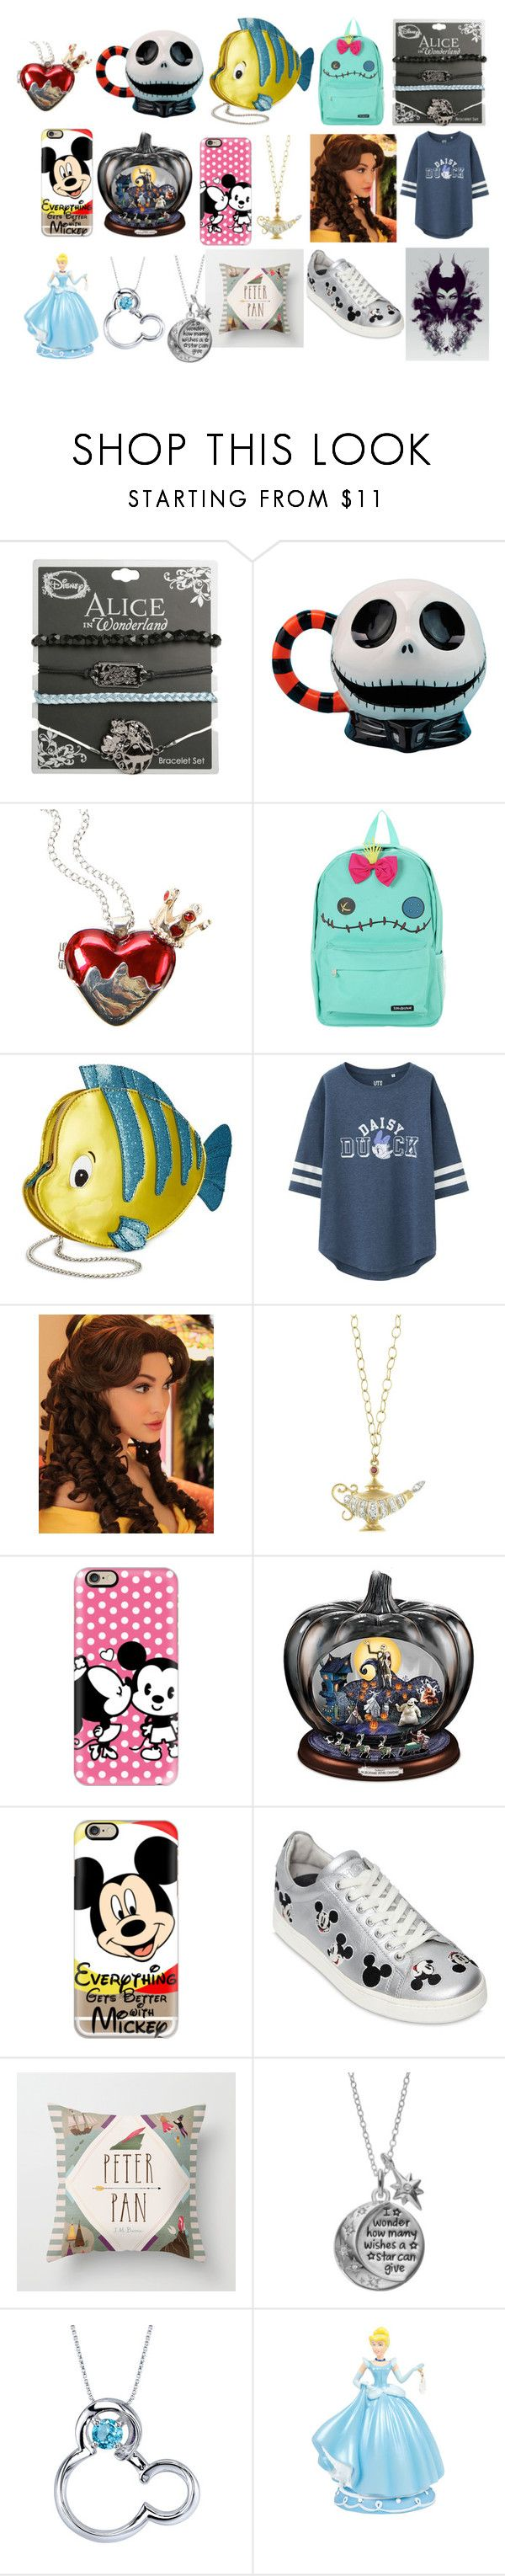 """Disney favorite of october"" by ory-olivia on Polyvore featuring Disney, Danielle Nicole, Uniqlo, Cathy Waterman, Casetify et MOA Master of Arts"